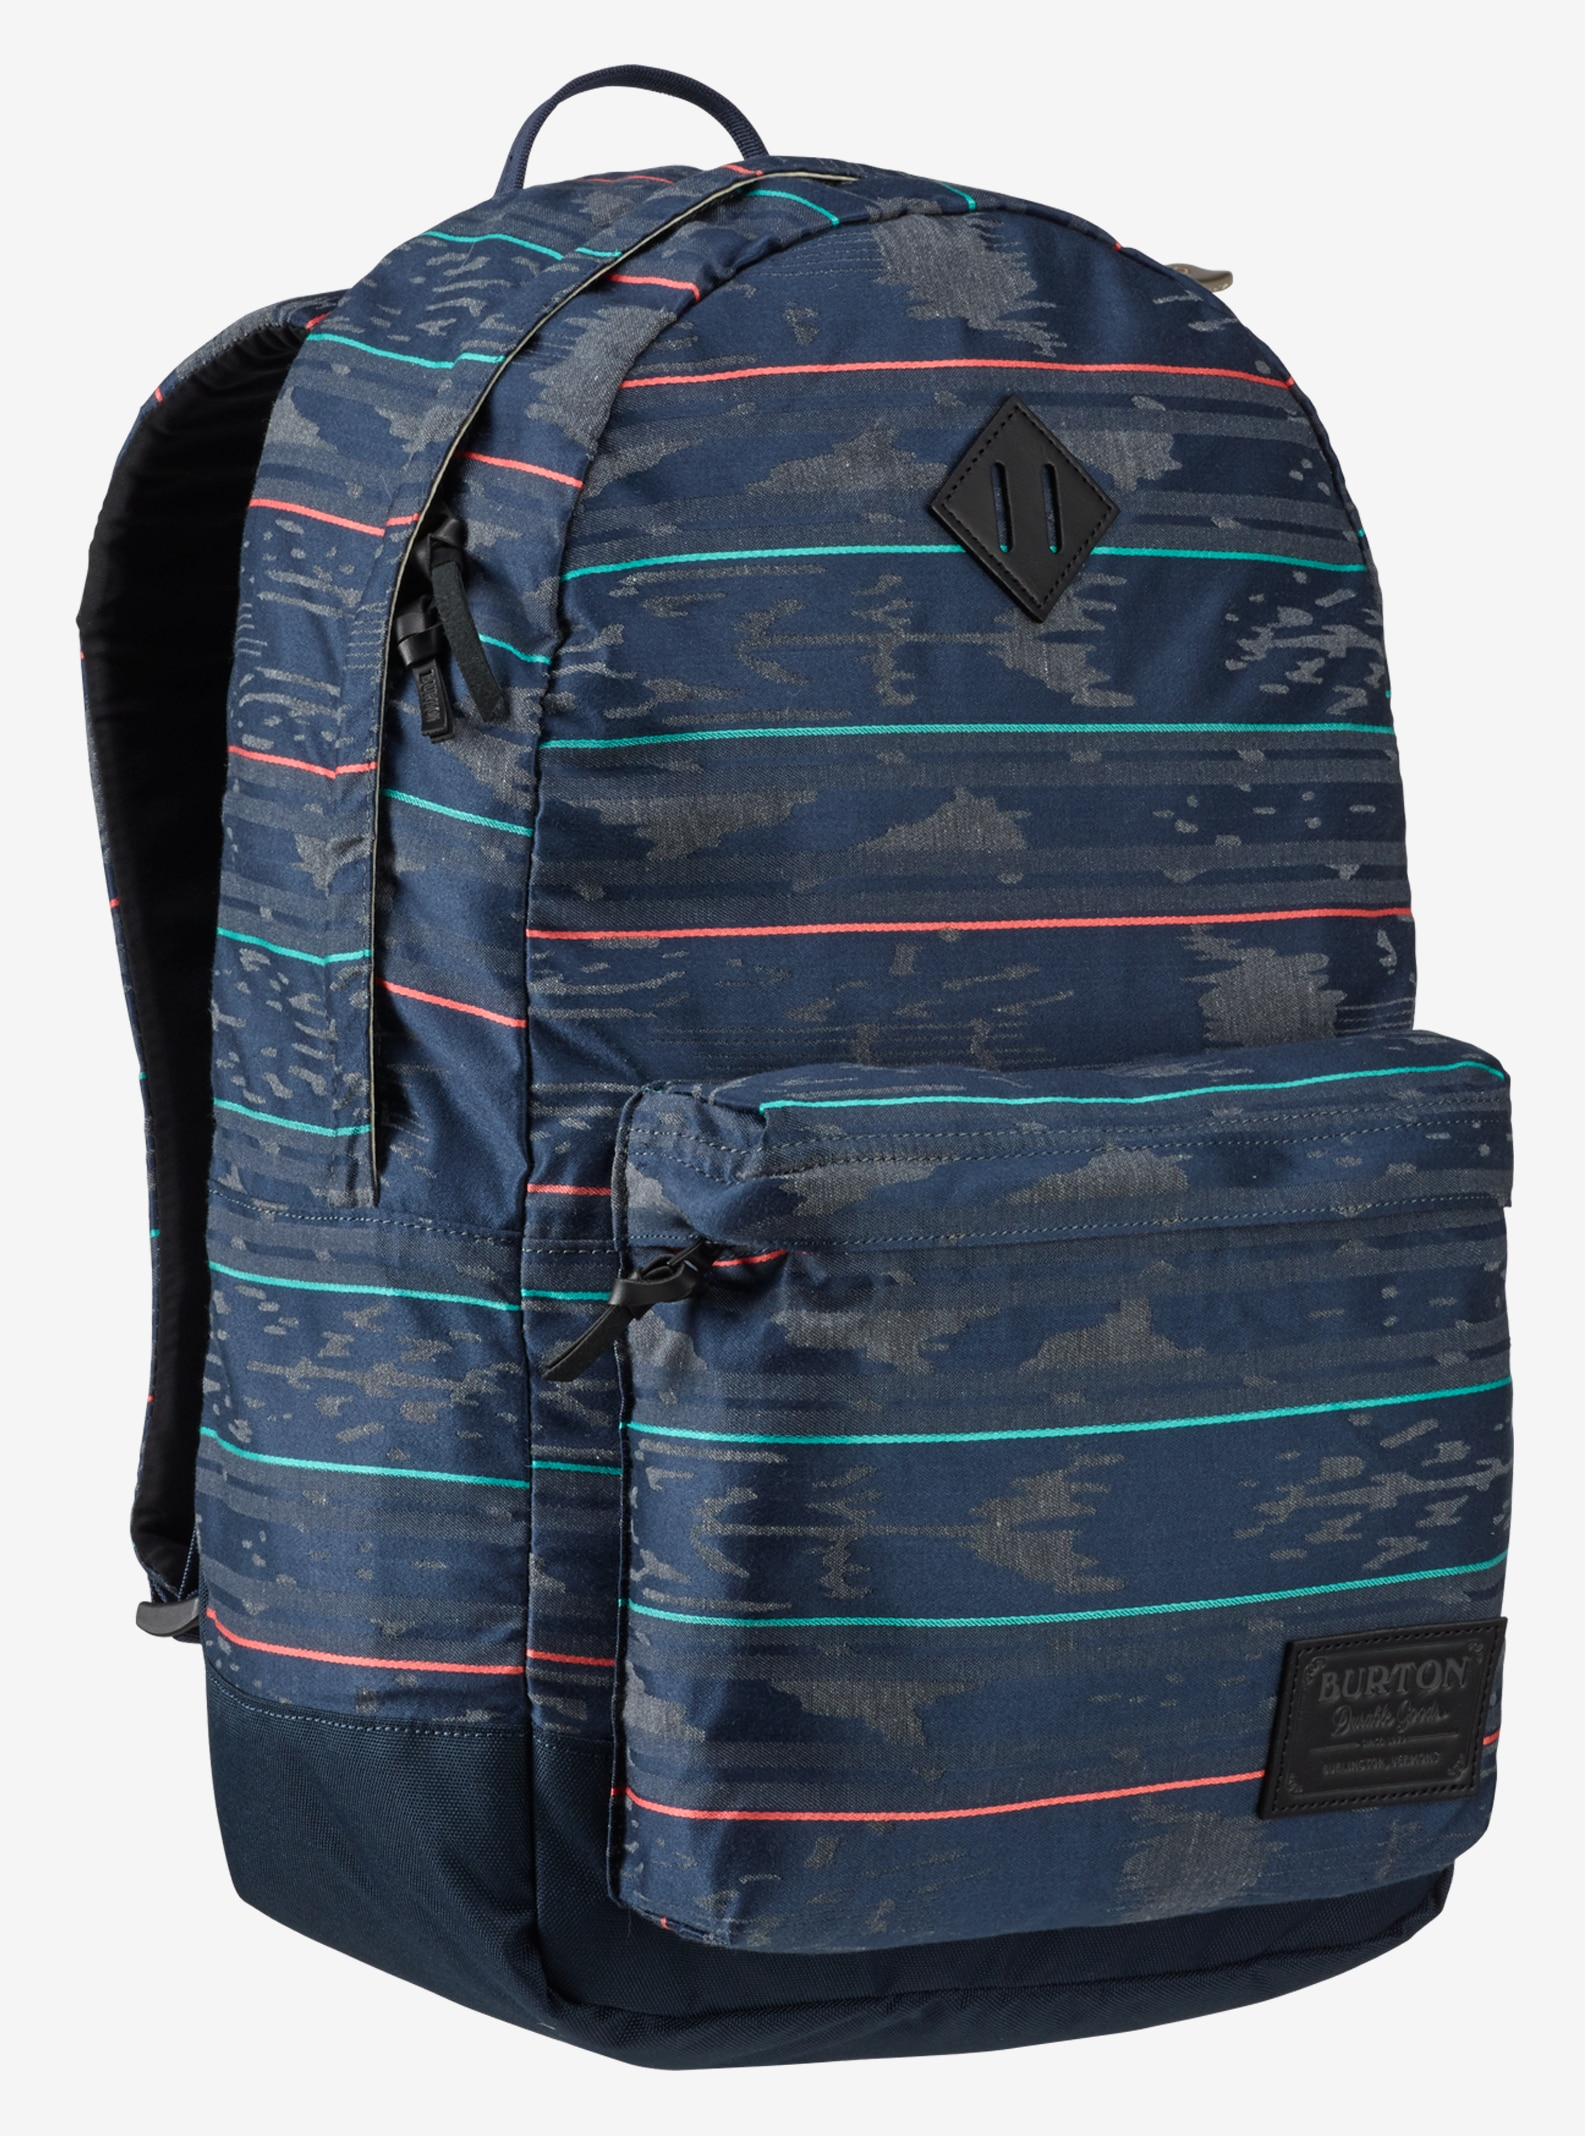 Burton Women's Kettle Backpack shown in Guatikat Yarn Dye